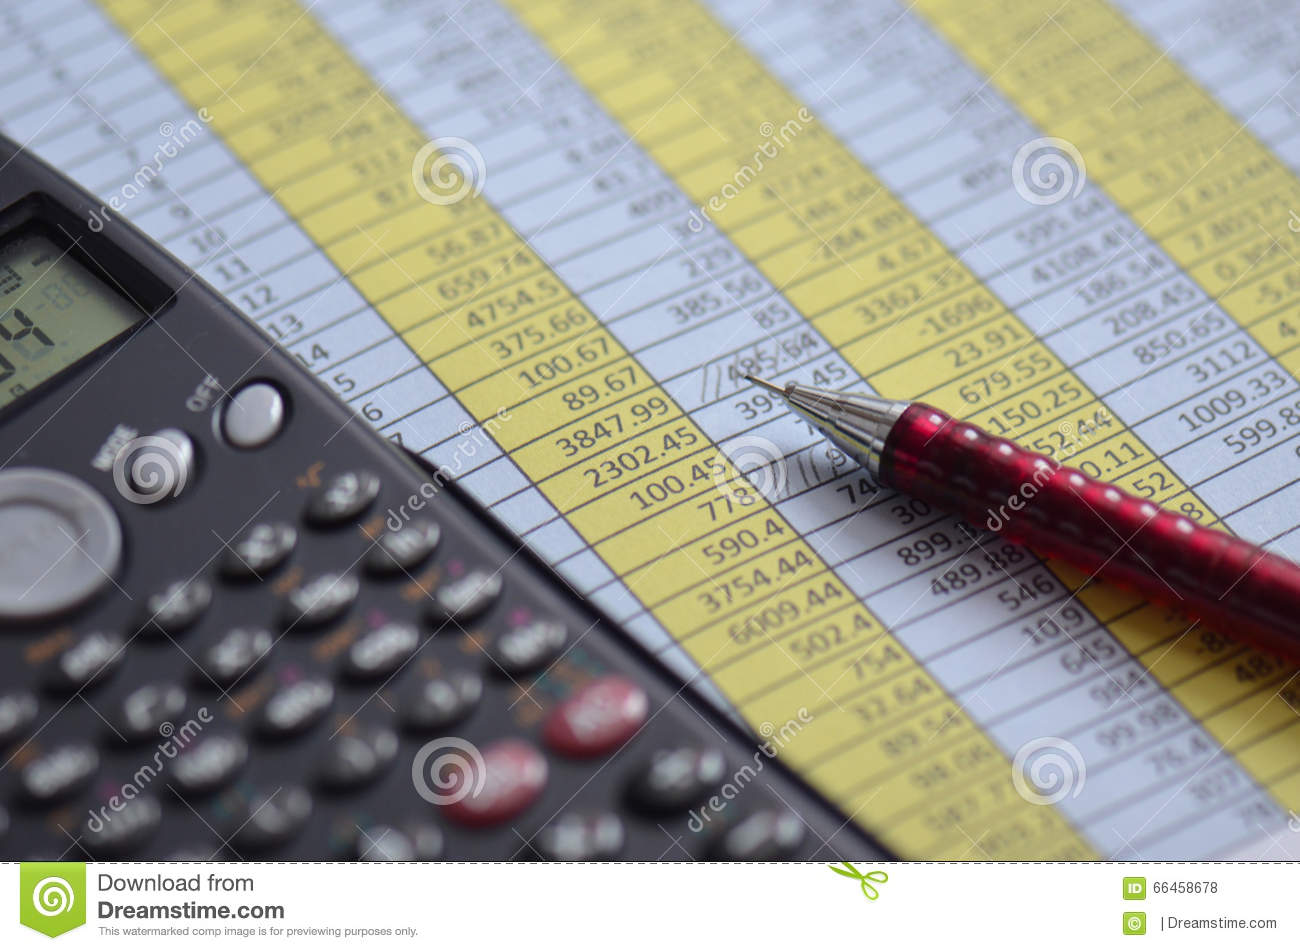 Accountancy (accounting manual data verification)